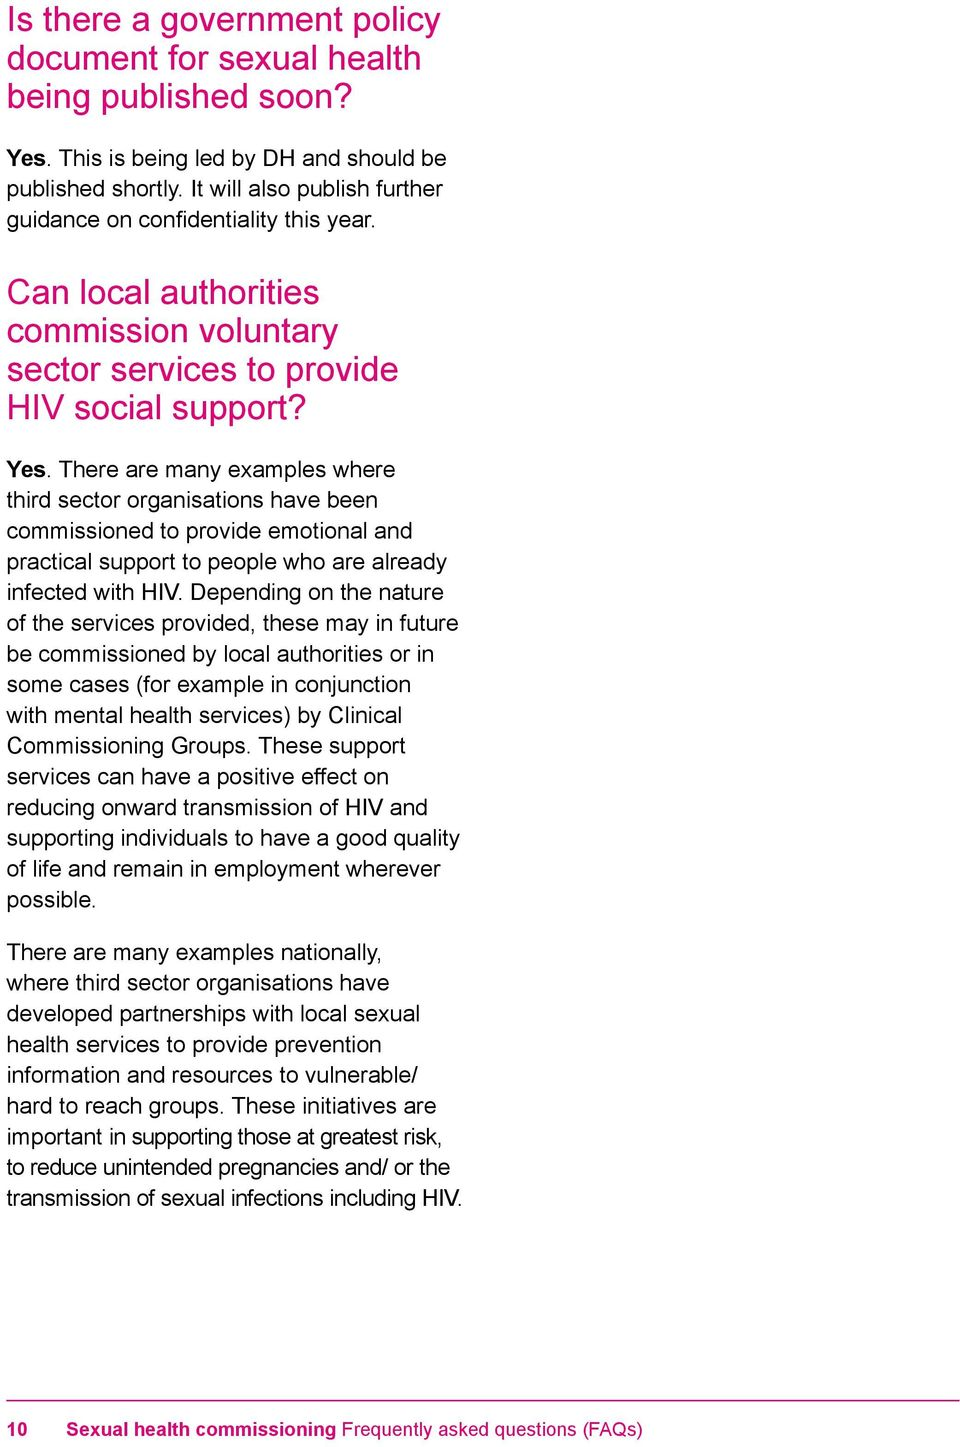 There are many examples where third sector organisations have been commissioned to provide emotional and practical support to people who are already infected with HIV.